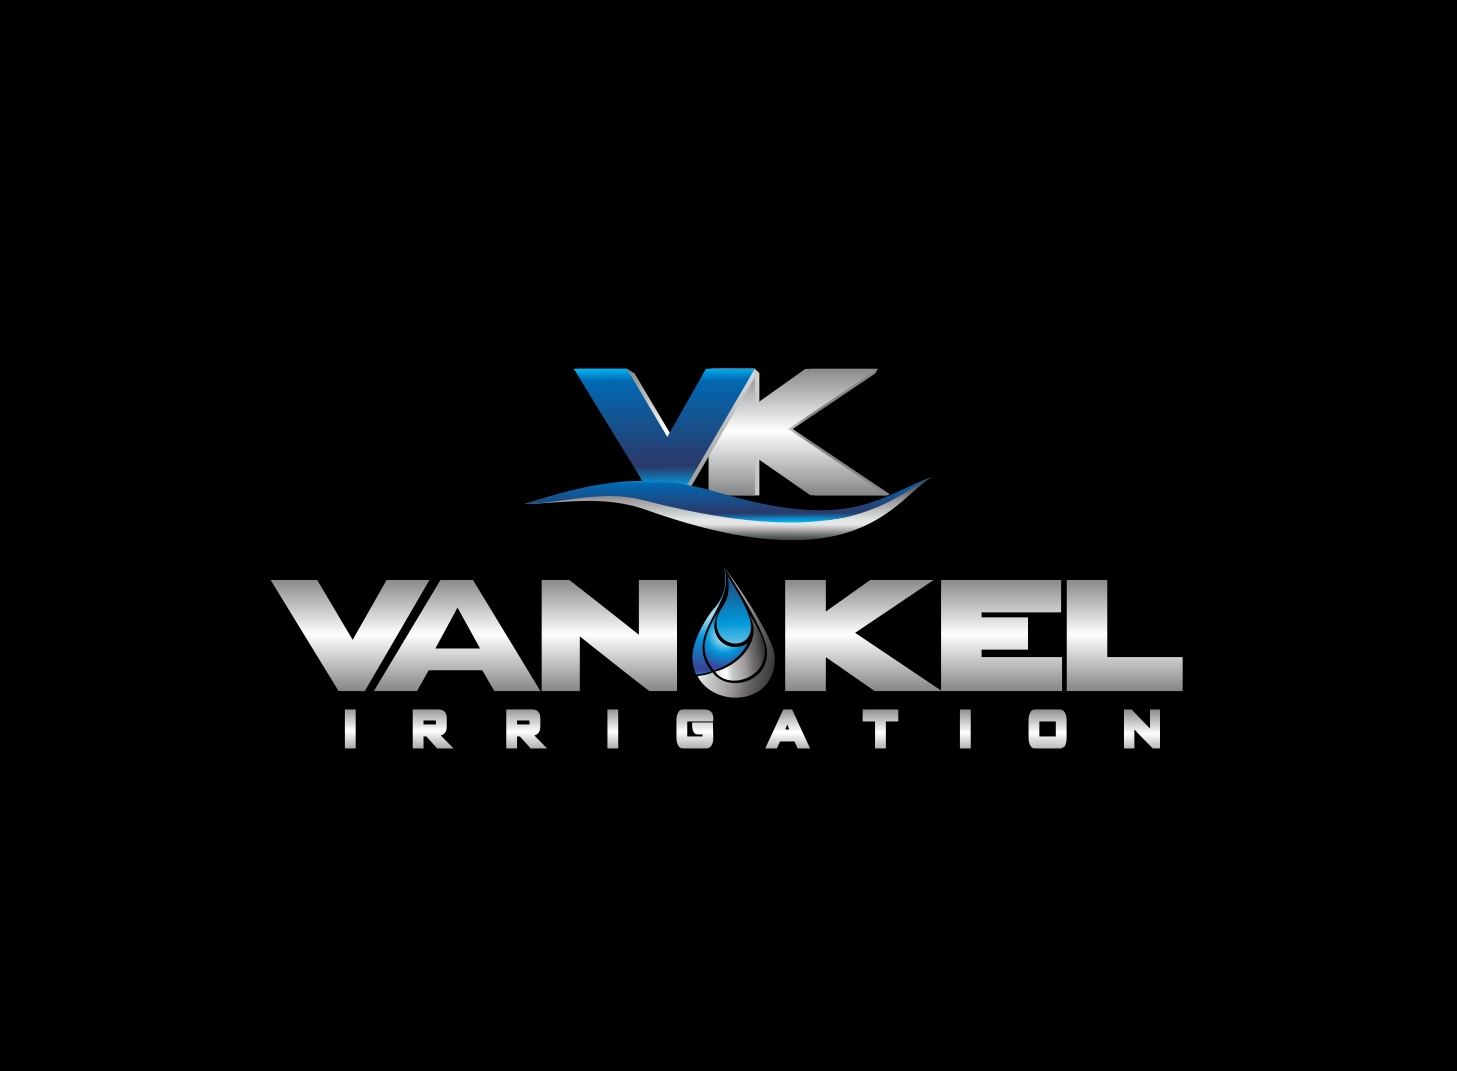 Logo Design by Zdravko Krulj - Entry No. 281 in the Logo Design Contest Van-Kel Irrigation Logo Design.